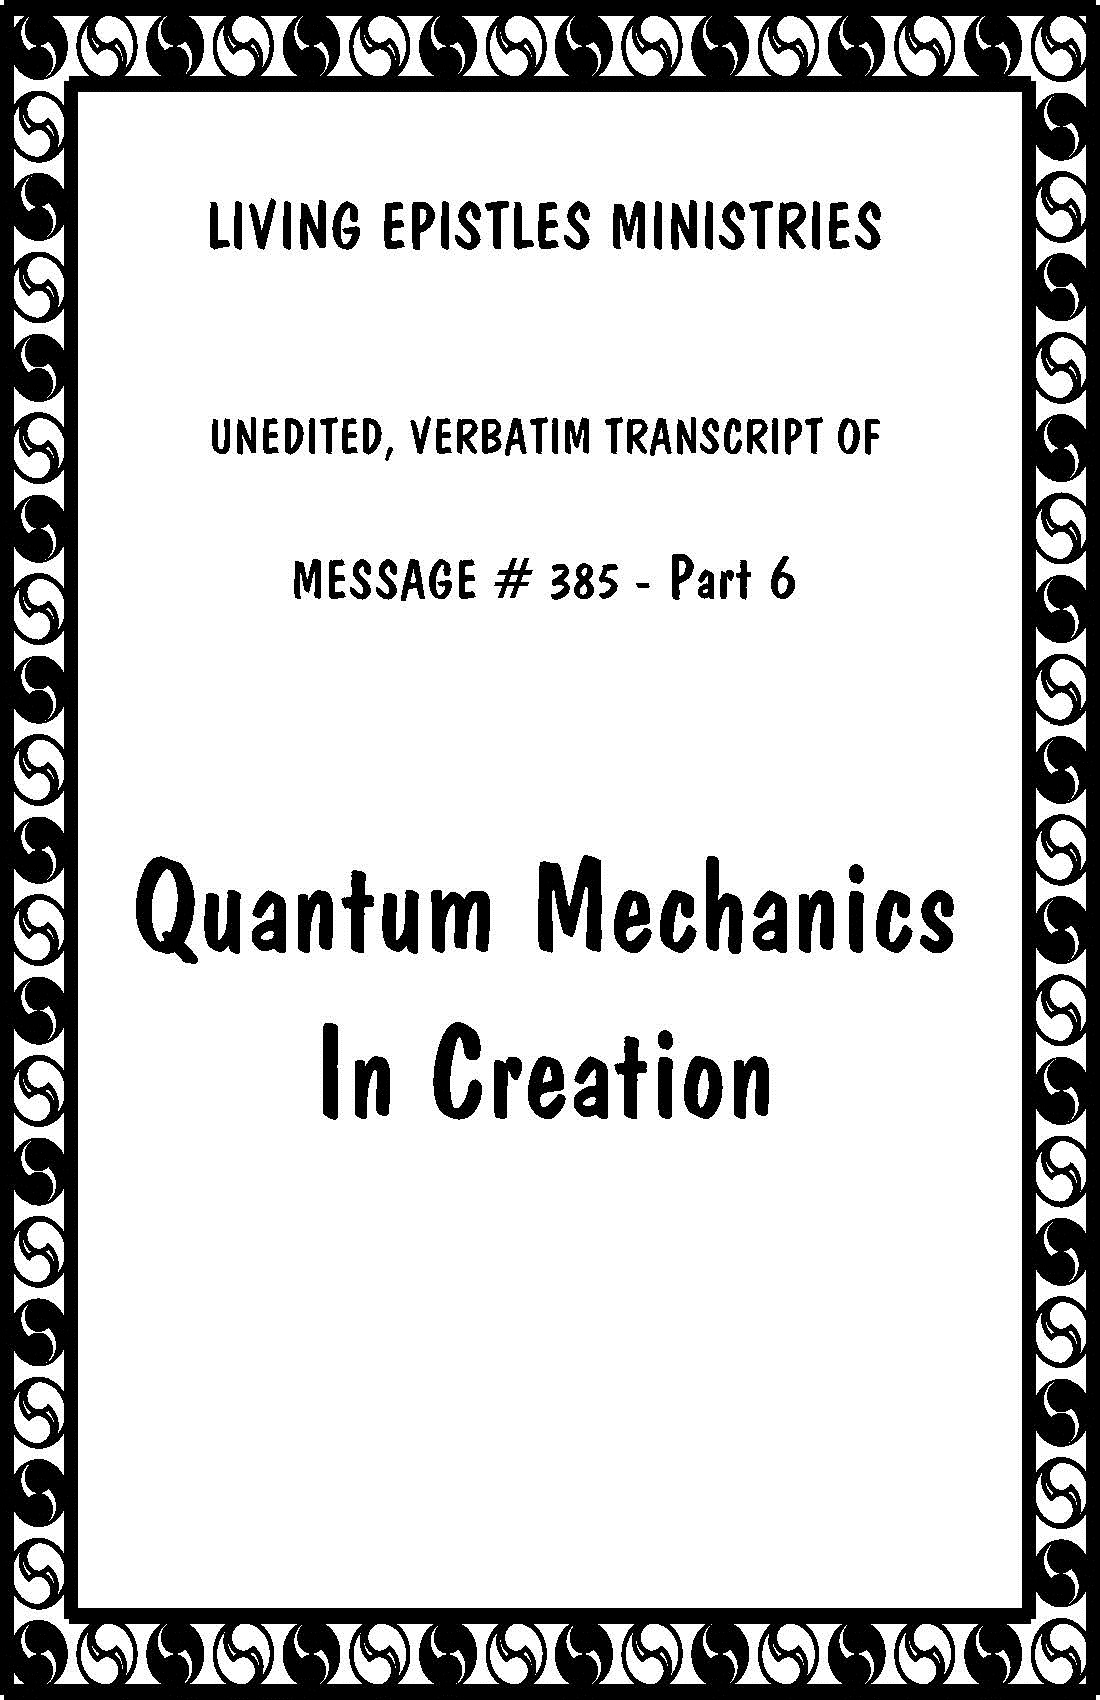 QuantumMechanicsInCreation.LEM.385.06.Cover.040616.72dpi